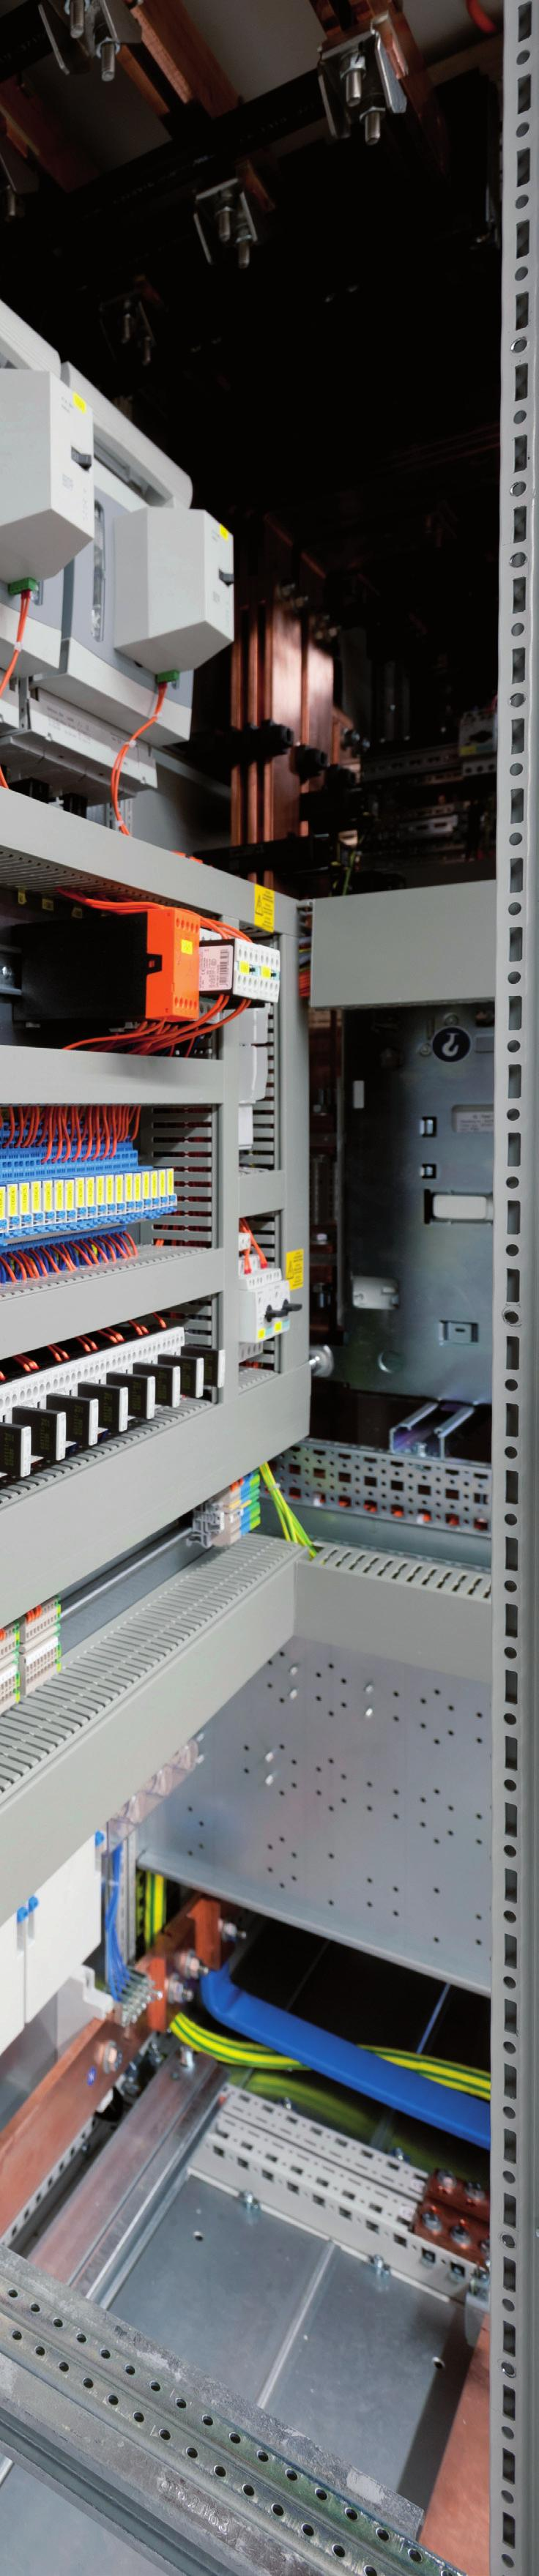 Eplan Pro Panel Virtual Control Cabinet Engineering Pdf E Plan Electrical Pictures Simply Hand Data On The Openness And Continuity Contained In Solutions Ensures Genuine Benefits